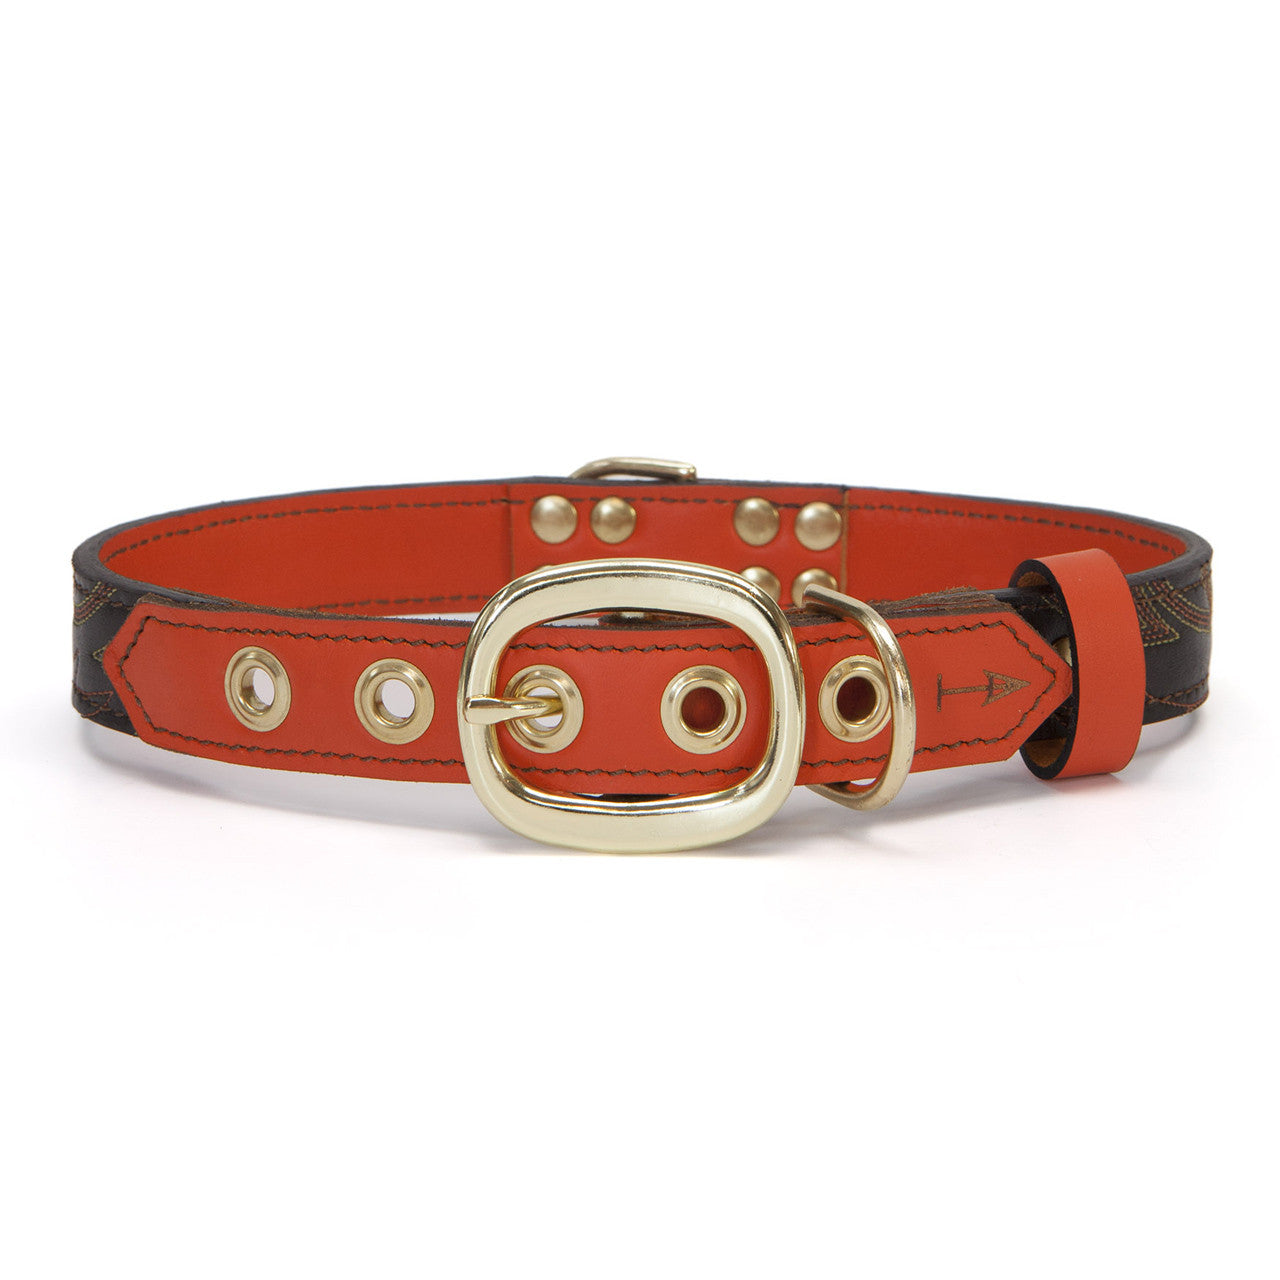 Orange Dog Collar with Dark Brown Leather + Orange Crest Stitching (back view)